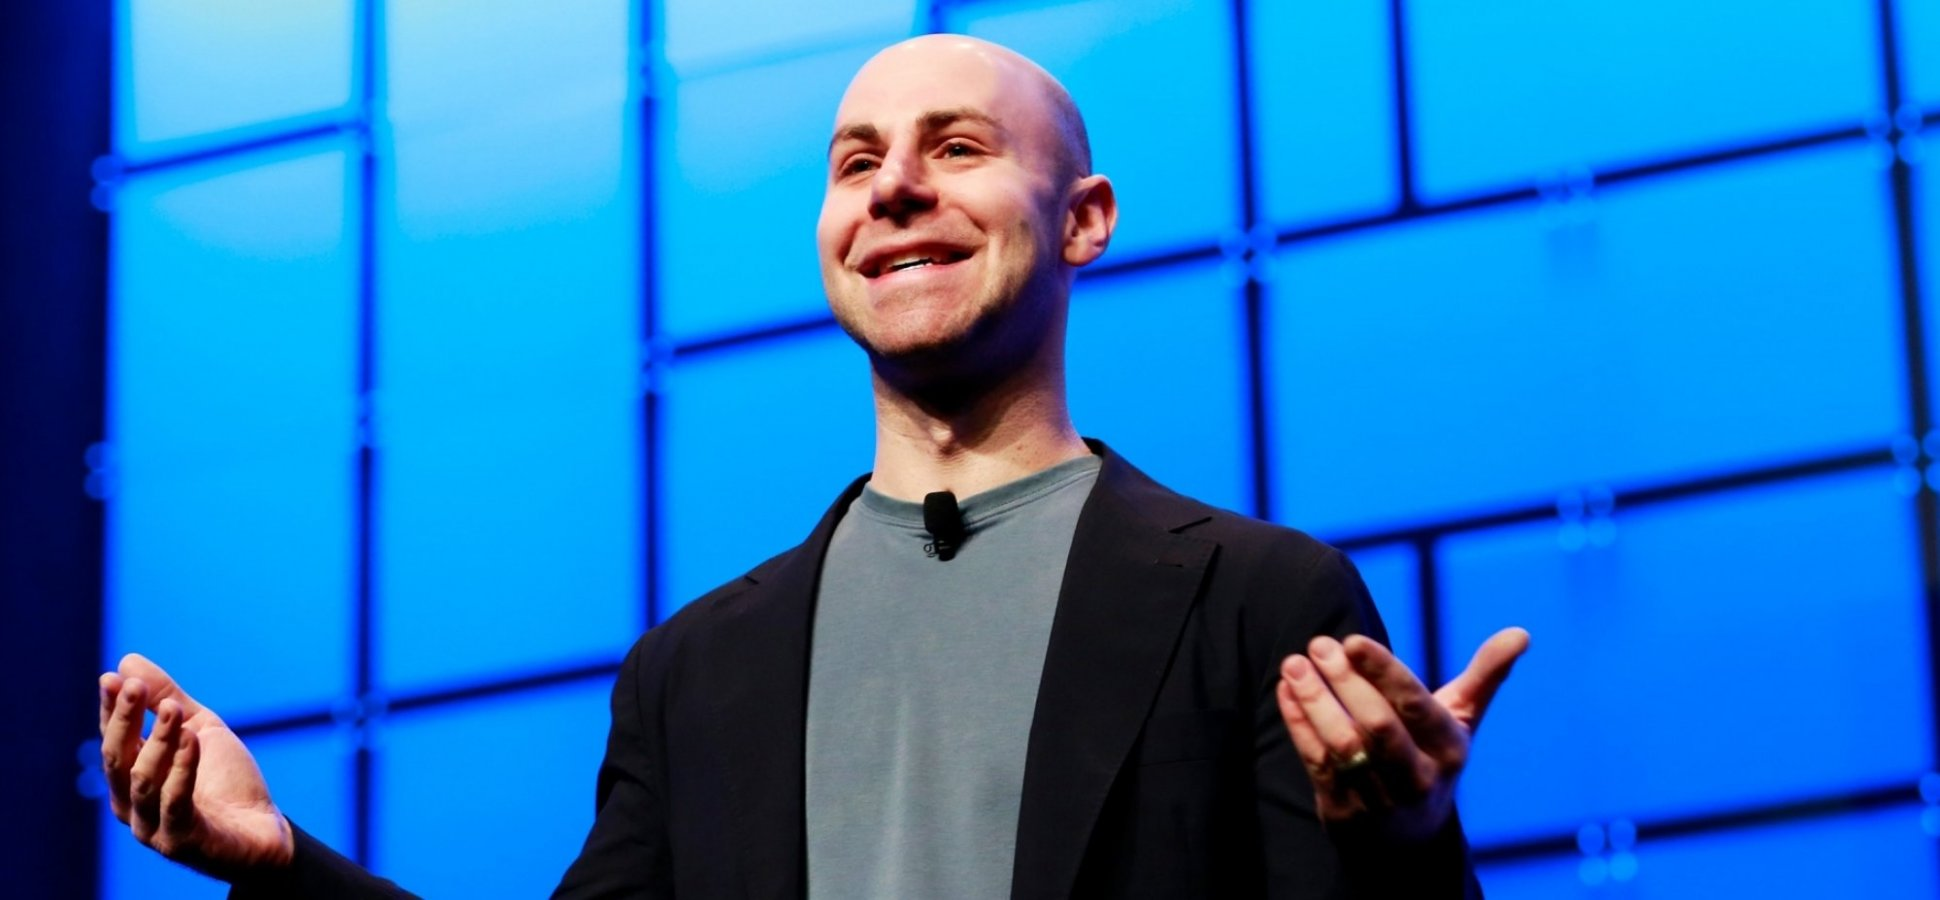 3 Things Wharton's Adam Grant Says You Should Do to Be Truly Successful